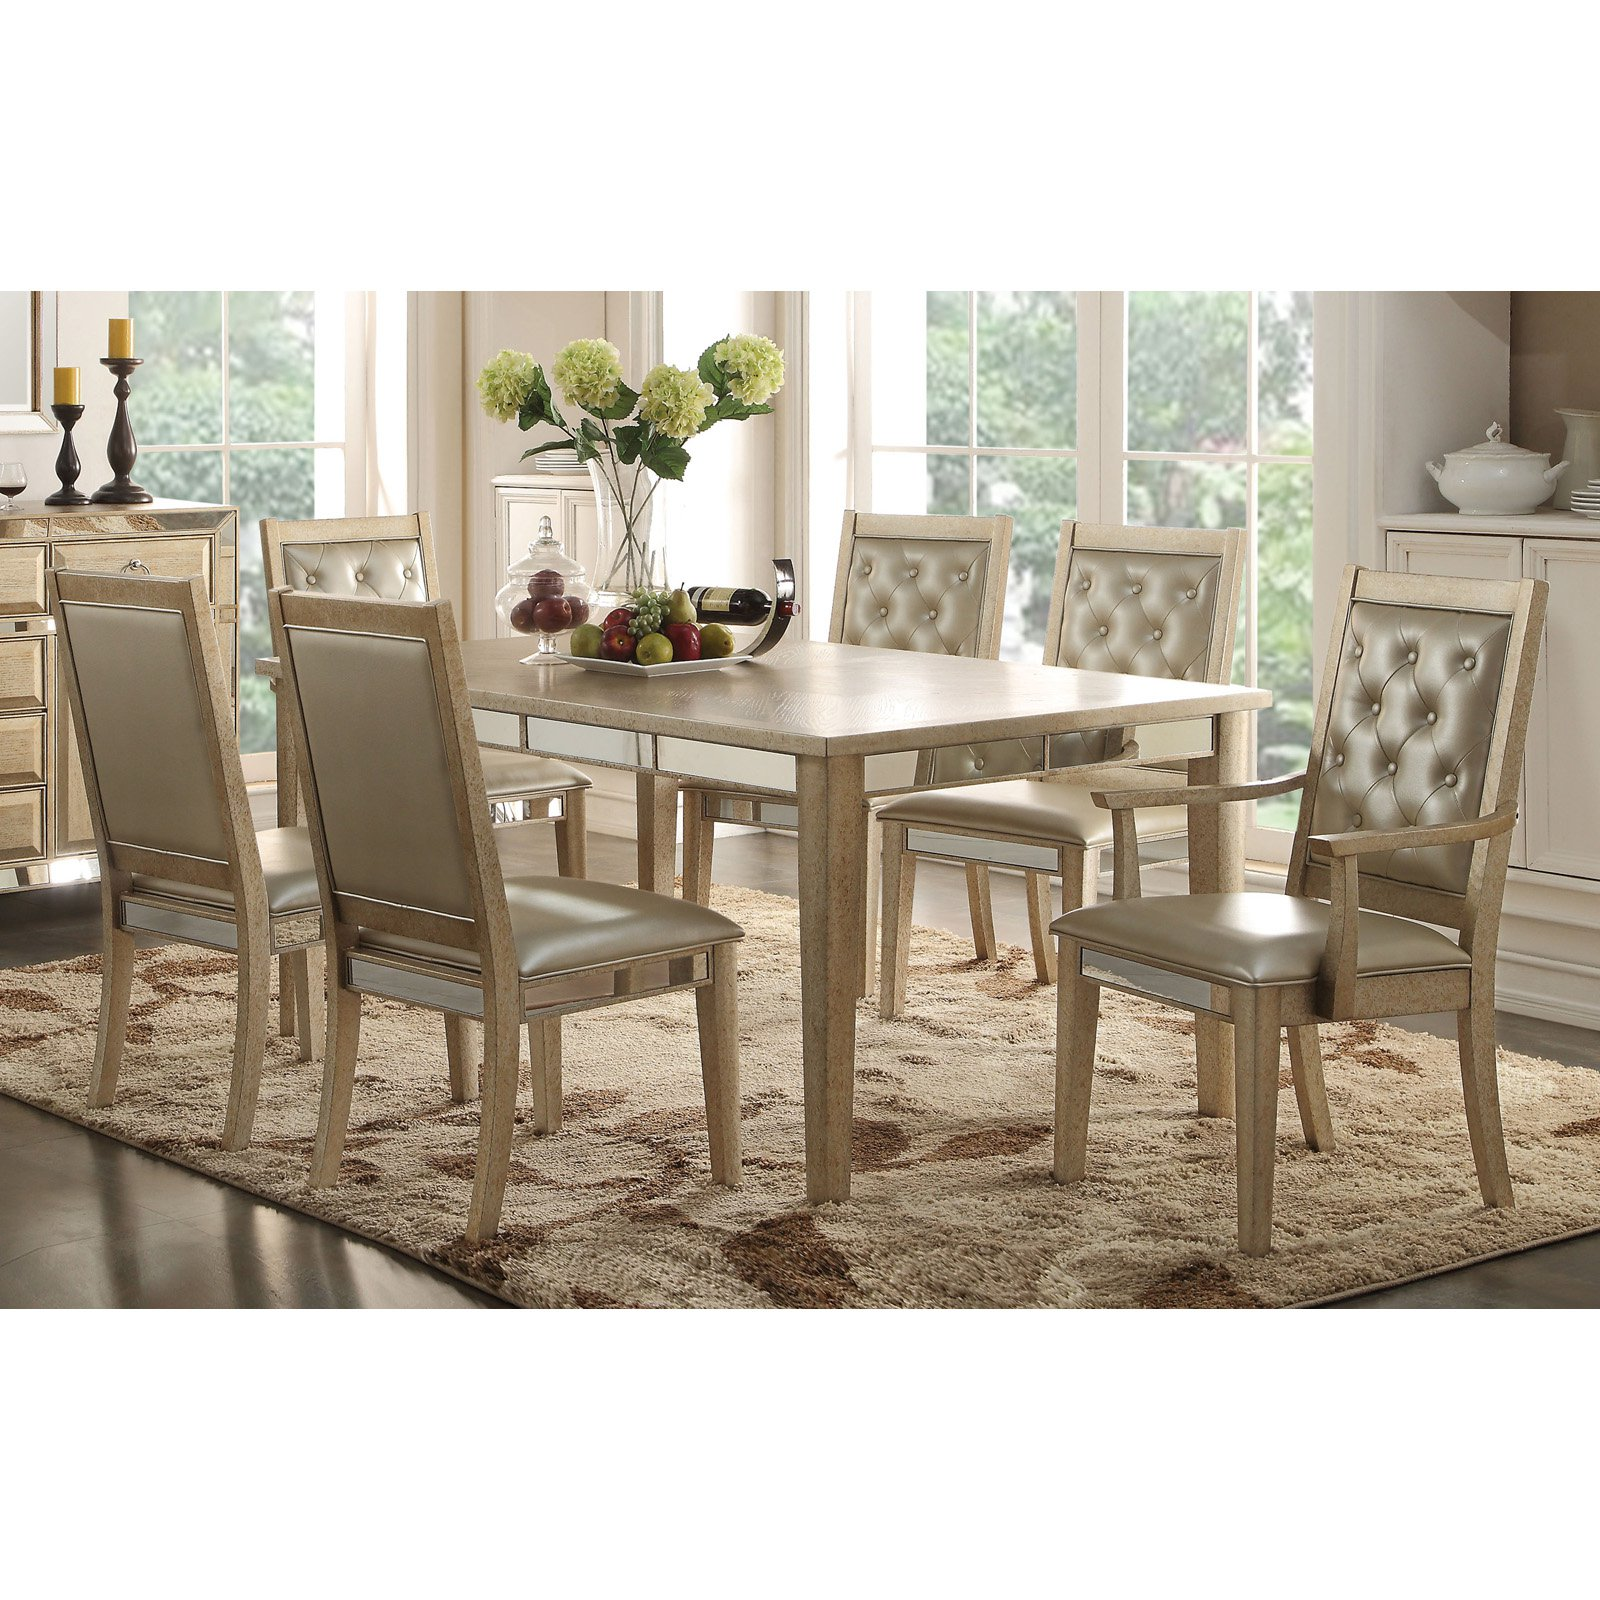 Acme Furniture Voeville Extended Dining Table - Antique Gold